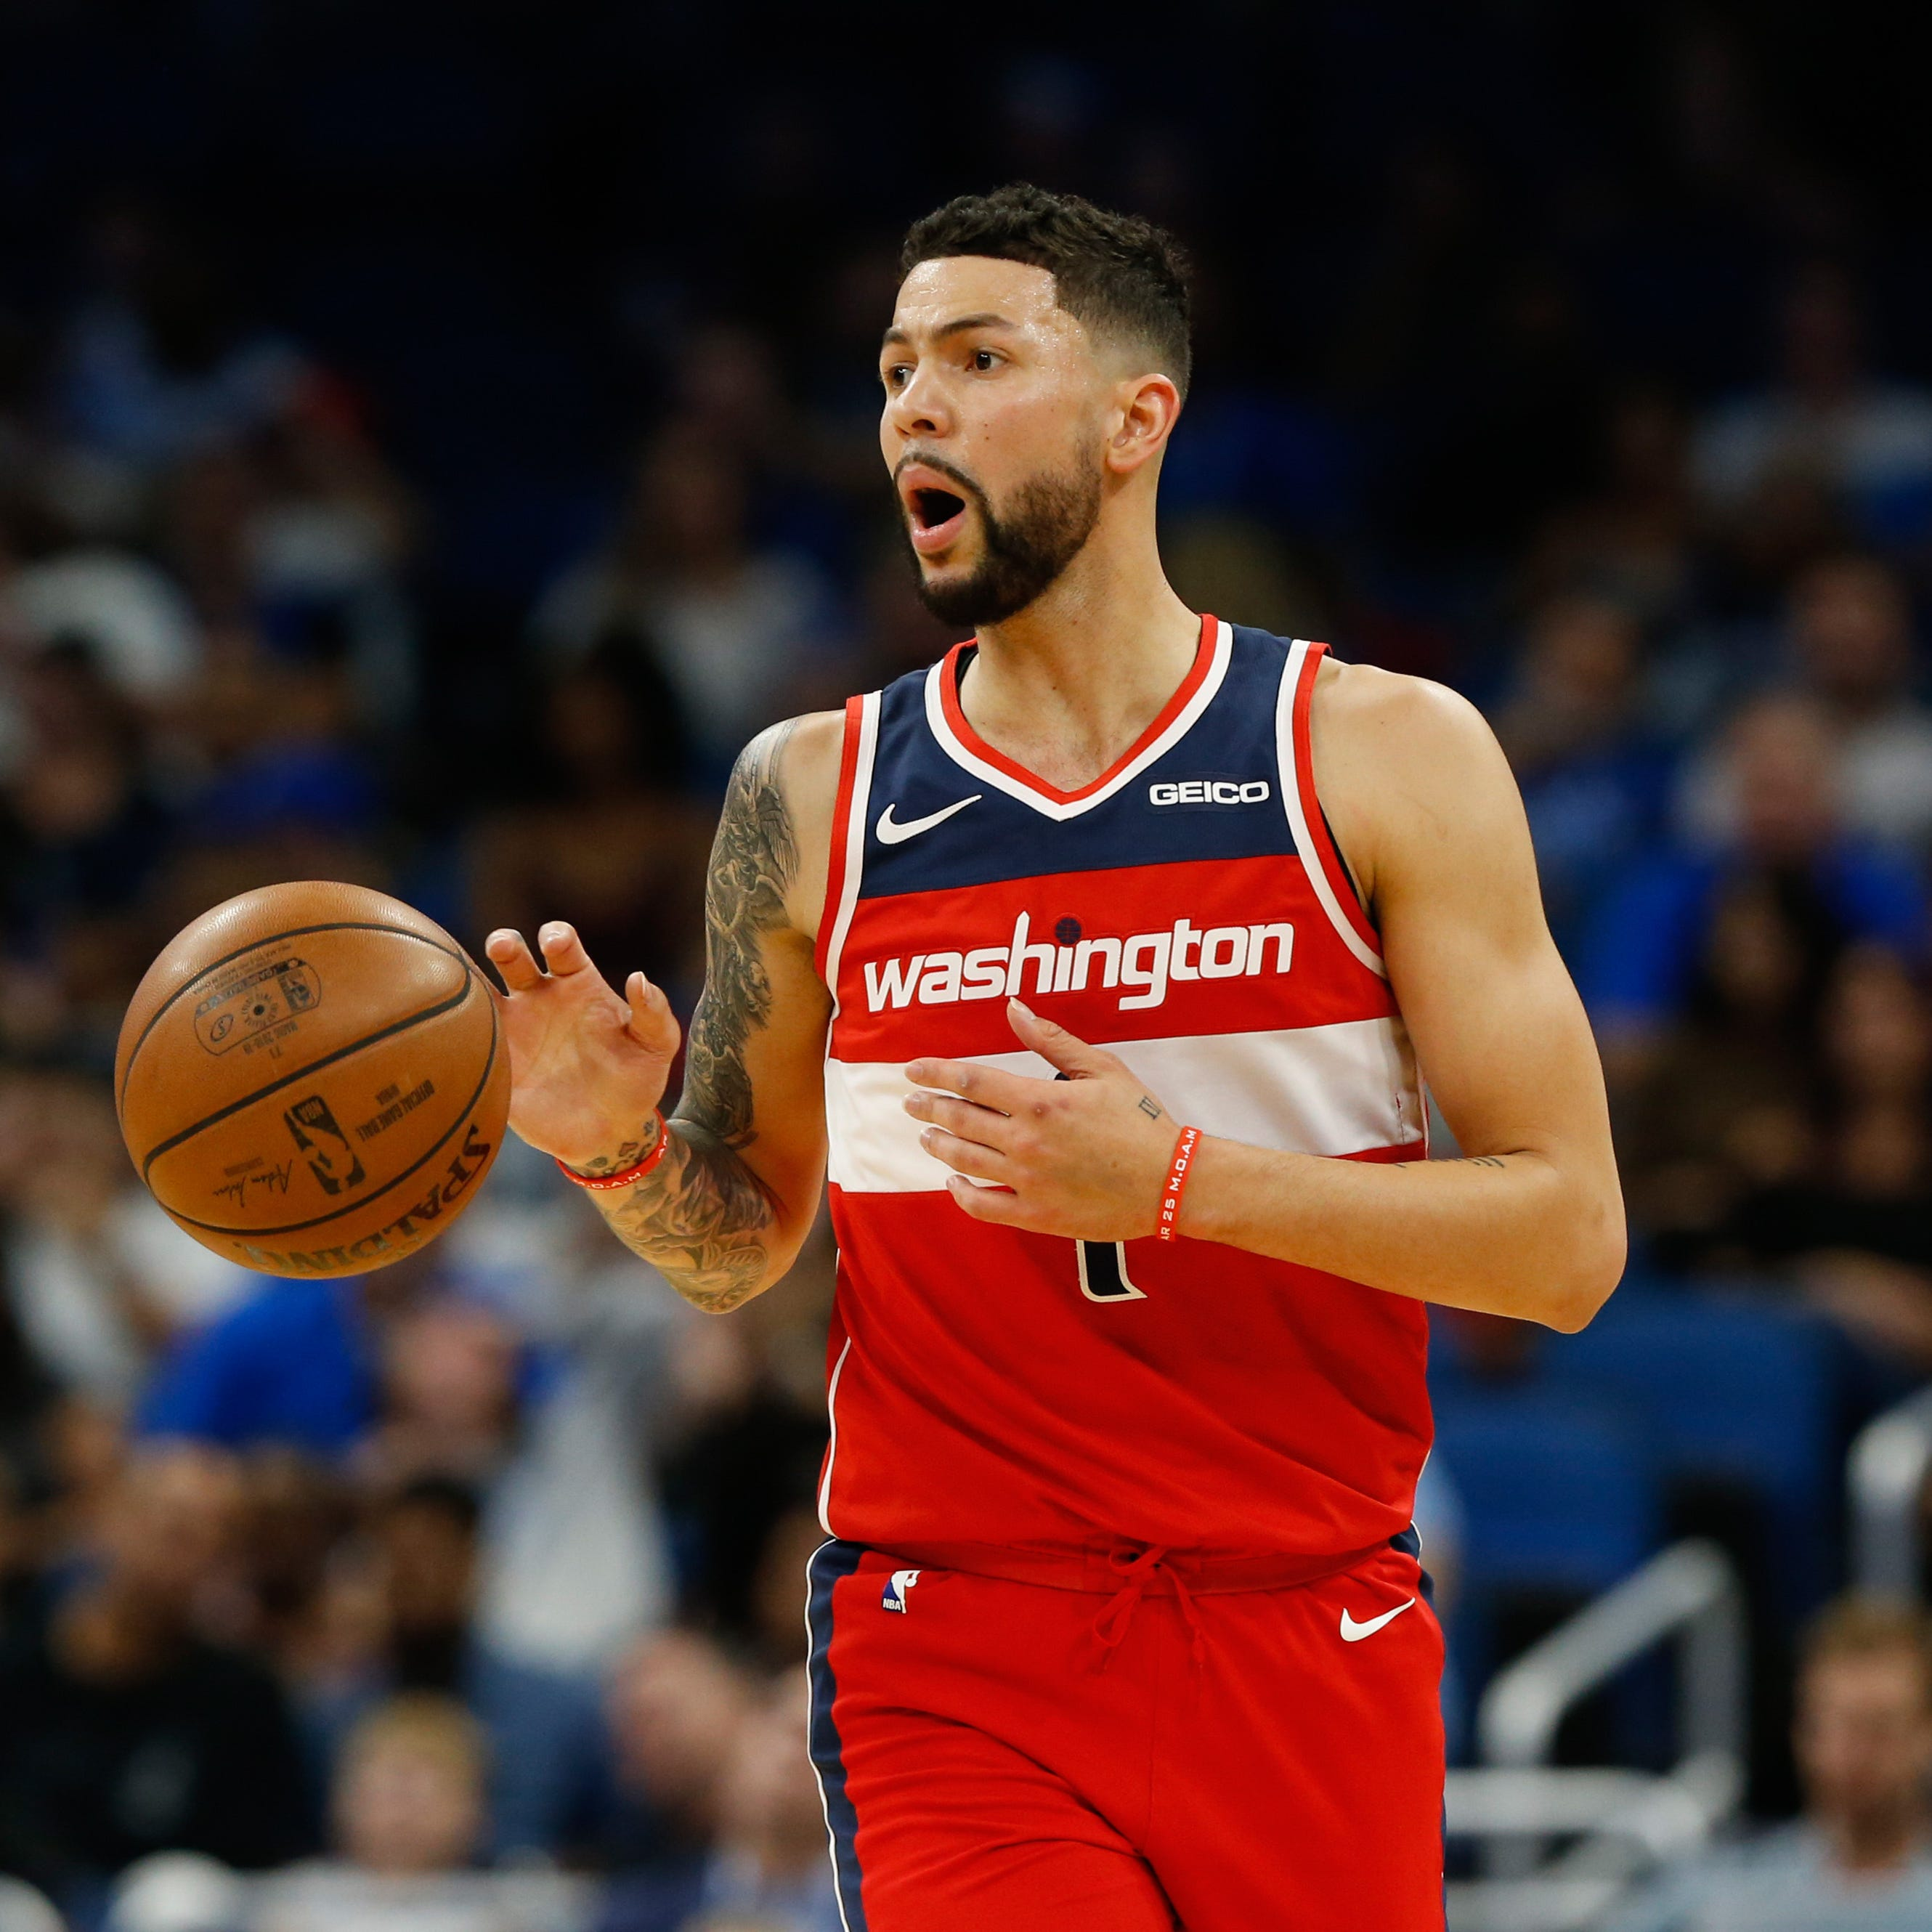 Suns parting ways with Austin Rivers after trade, source says